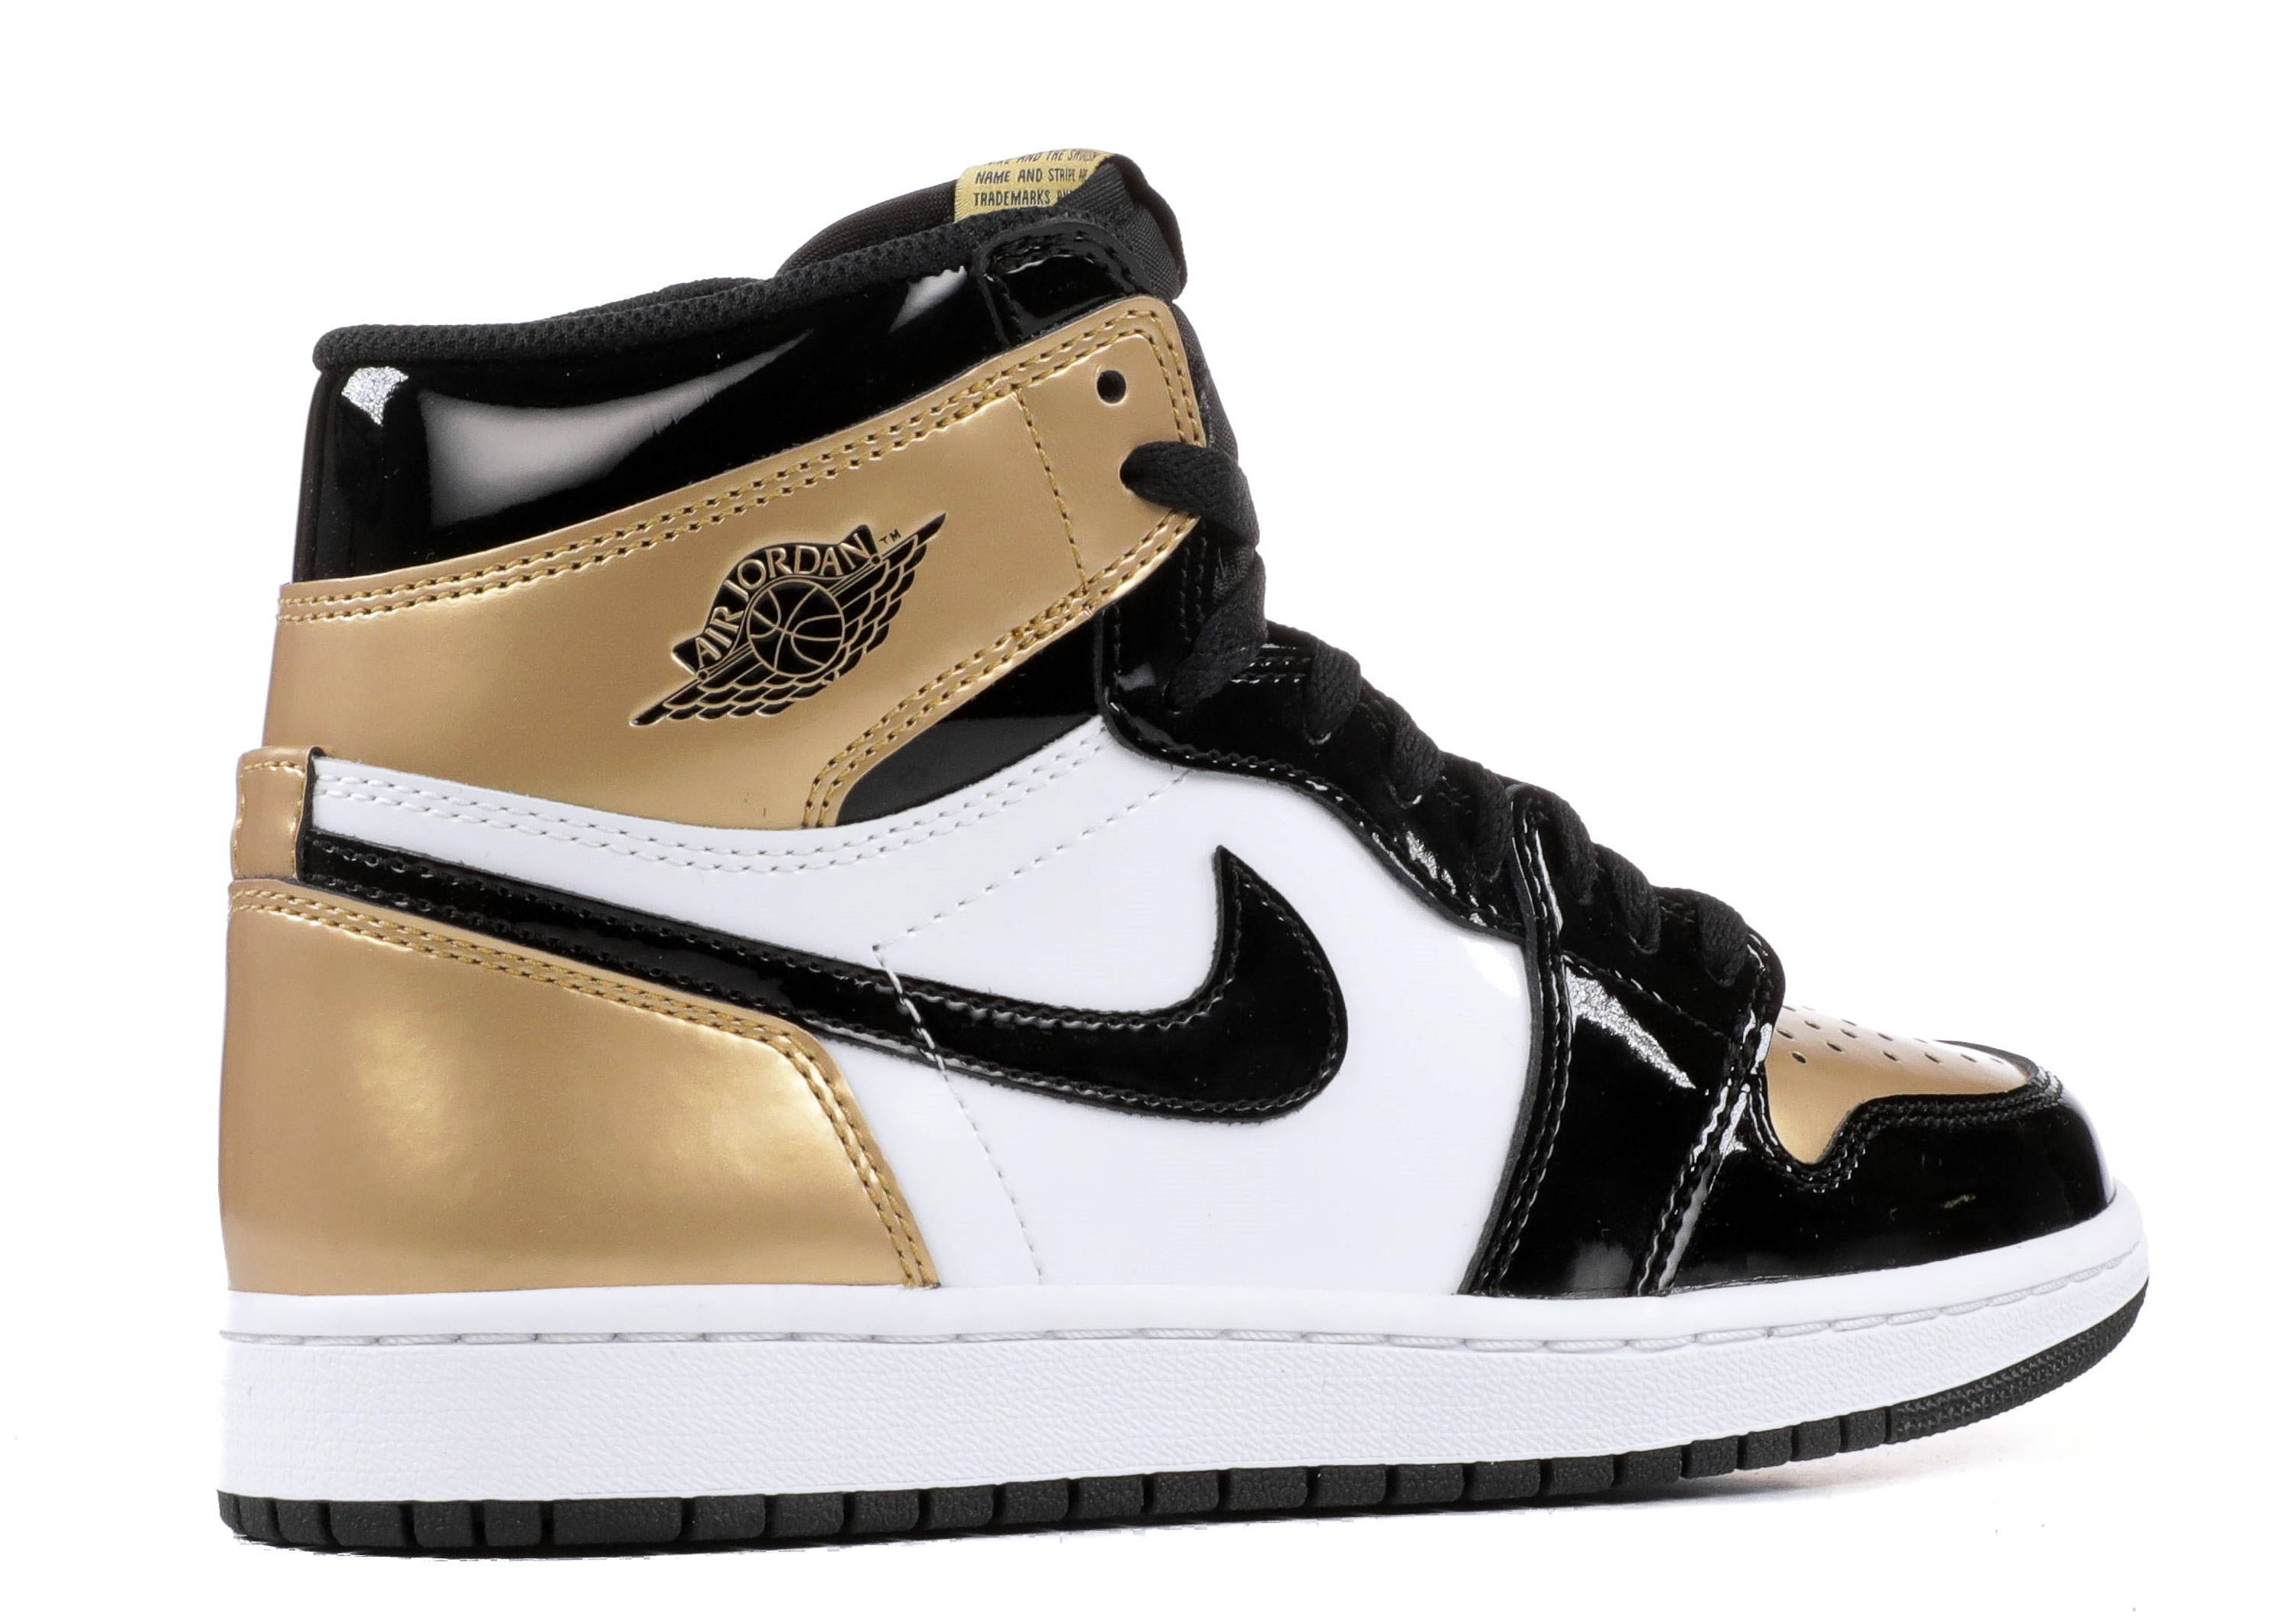 ... reduced air jordan 1 retro high og nrg gold 6fa1a 5e9fa 197715bb46c4a